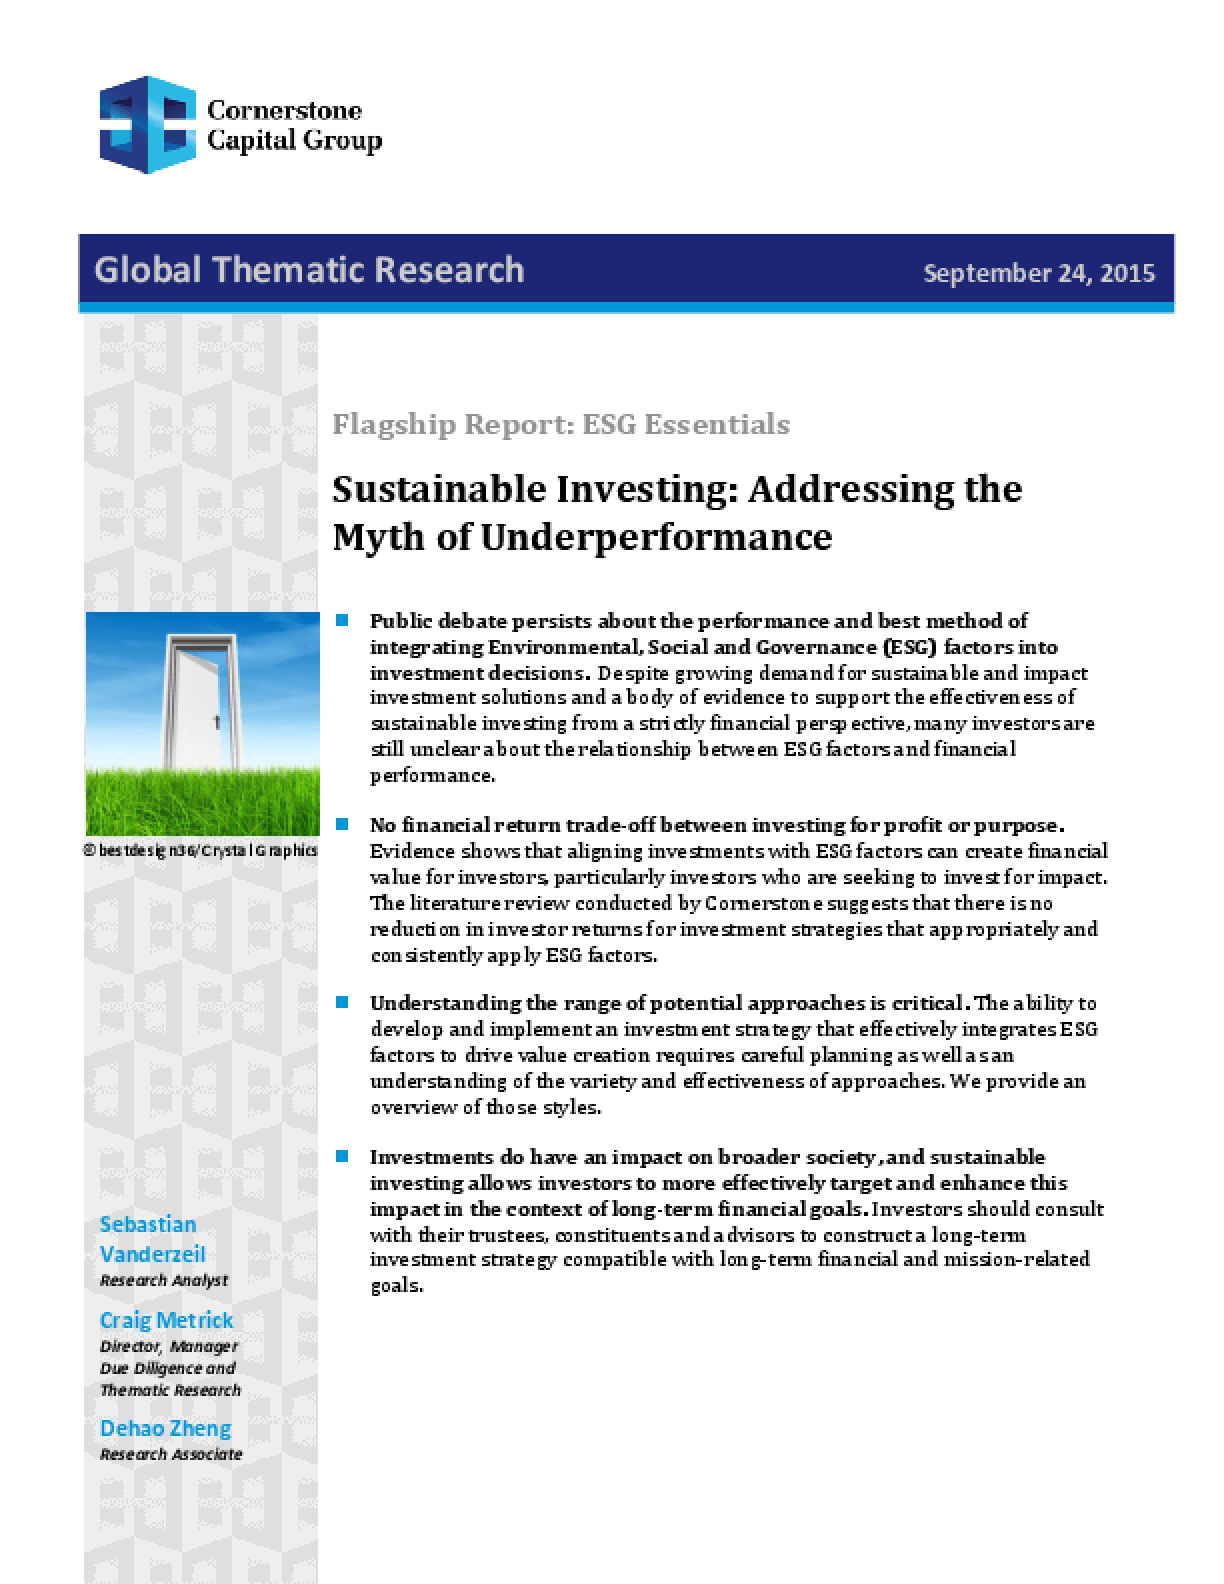 Flagship Report: ESG Essentials - Sustainable Investing: Addressing the Myth of Underperformance